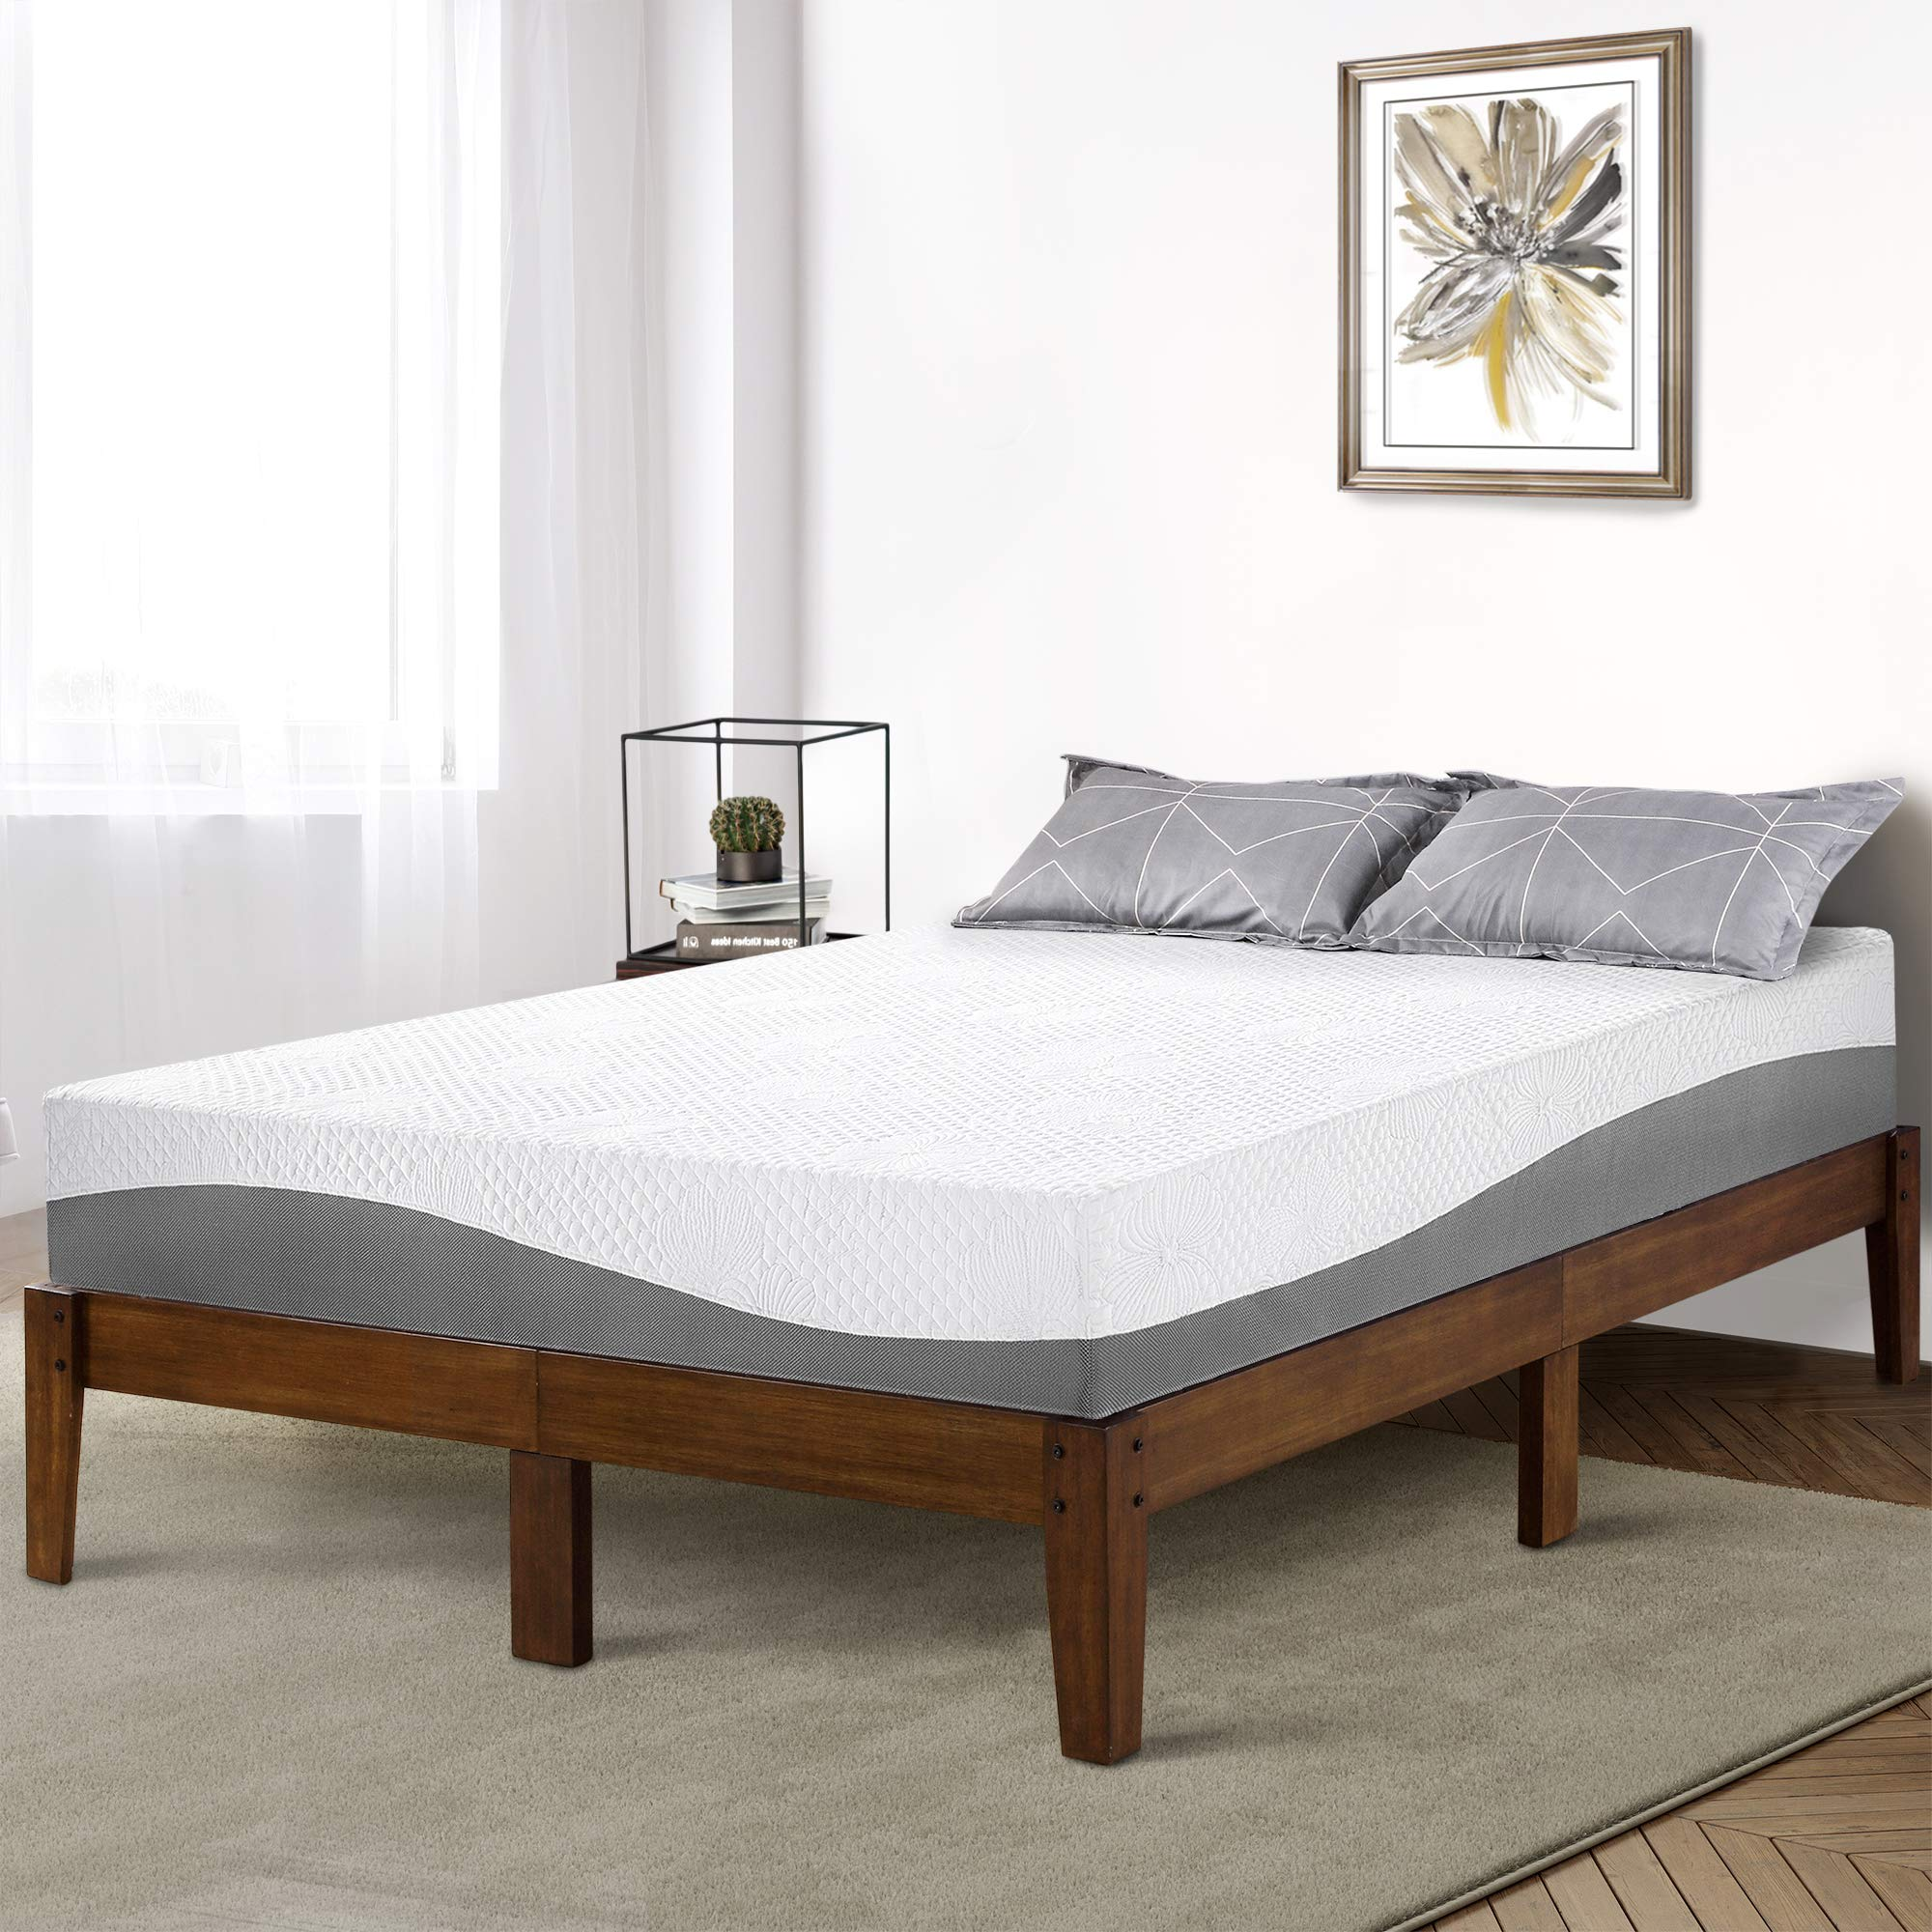 PrimaSleep 14 Inch Solid Wood Platform Bed Frame/Anti-Slip Support/No Box Spring Needed/Easy to Set Up,King,Natural Finish